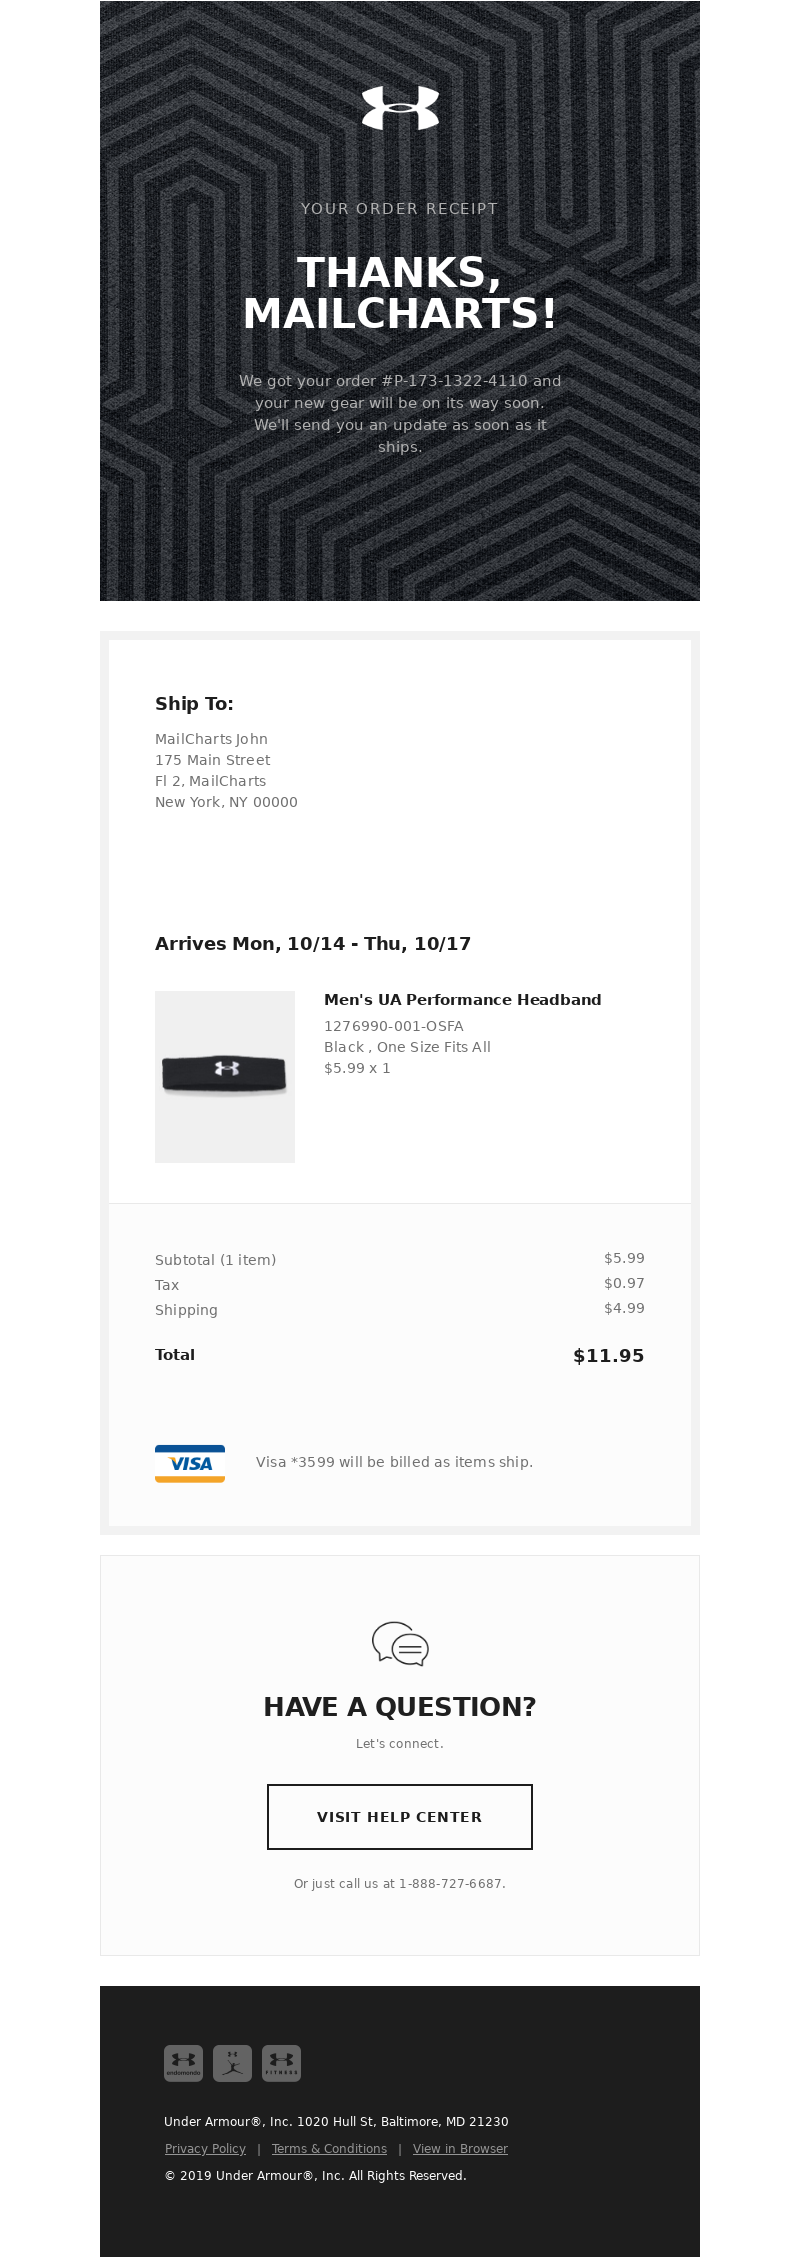 Under Armour - Order Confirmation For UA #P-173-1322-4110